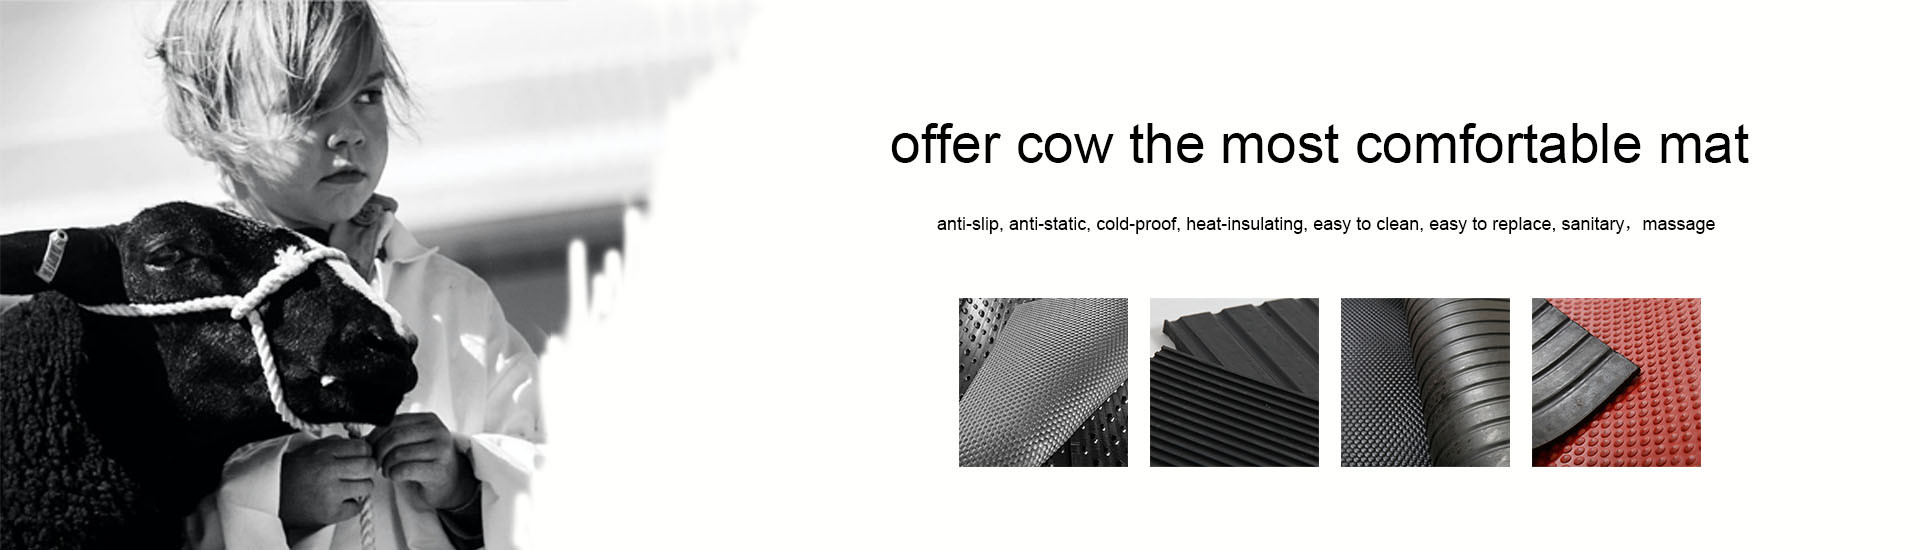 Anti Fatigue Cow Matting Rubber Cushion for horse stable mat cow mattress